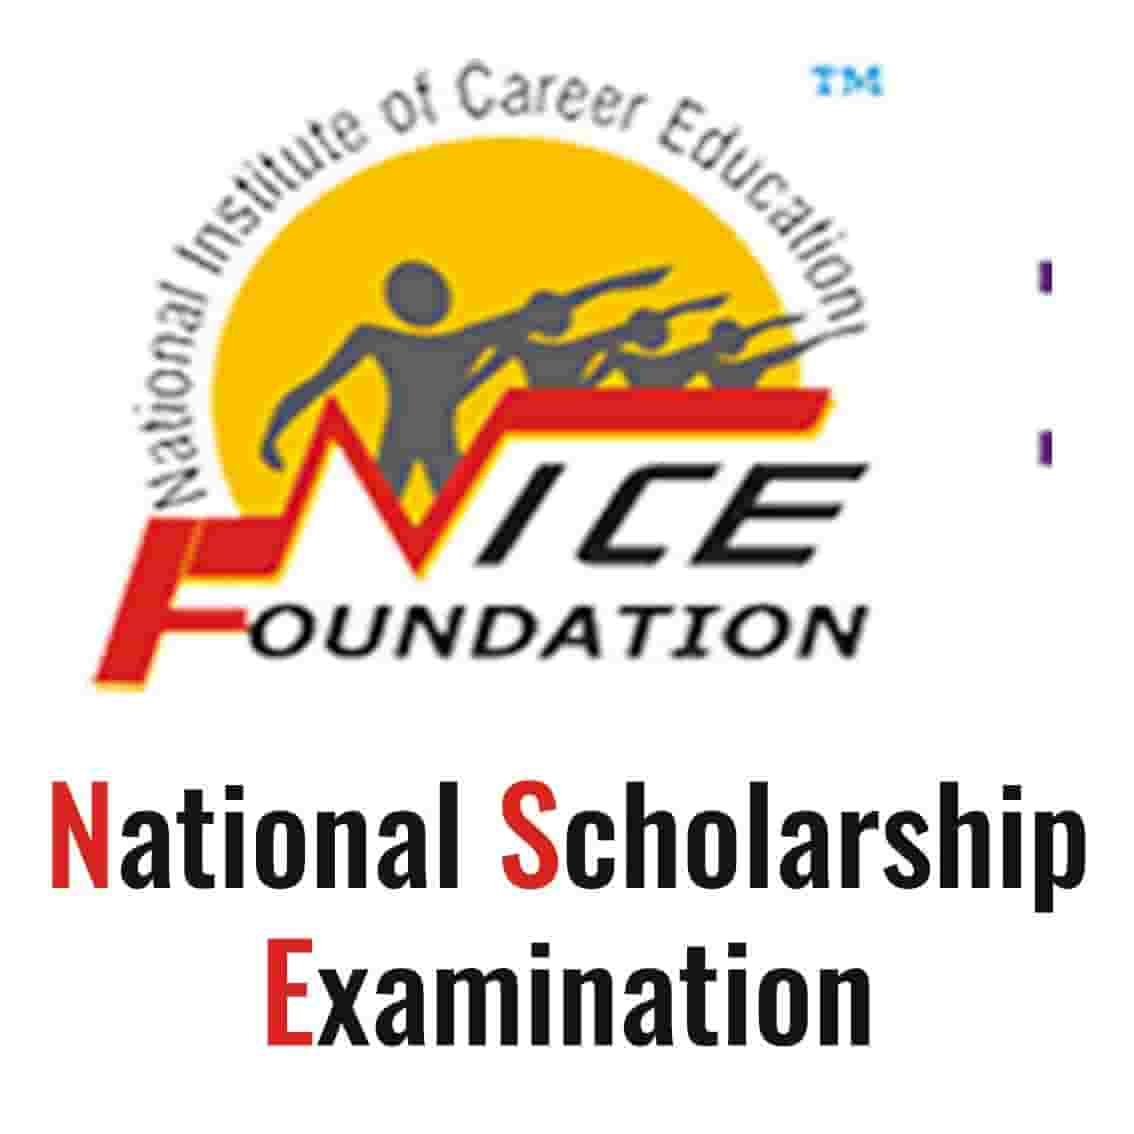 National Scholarship Examination